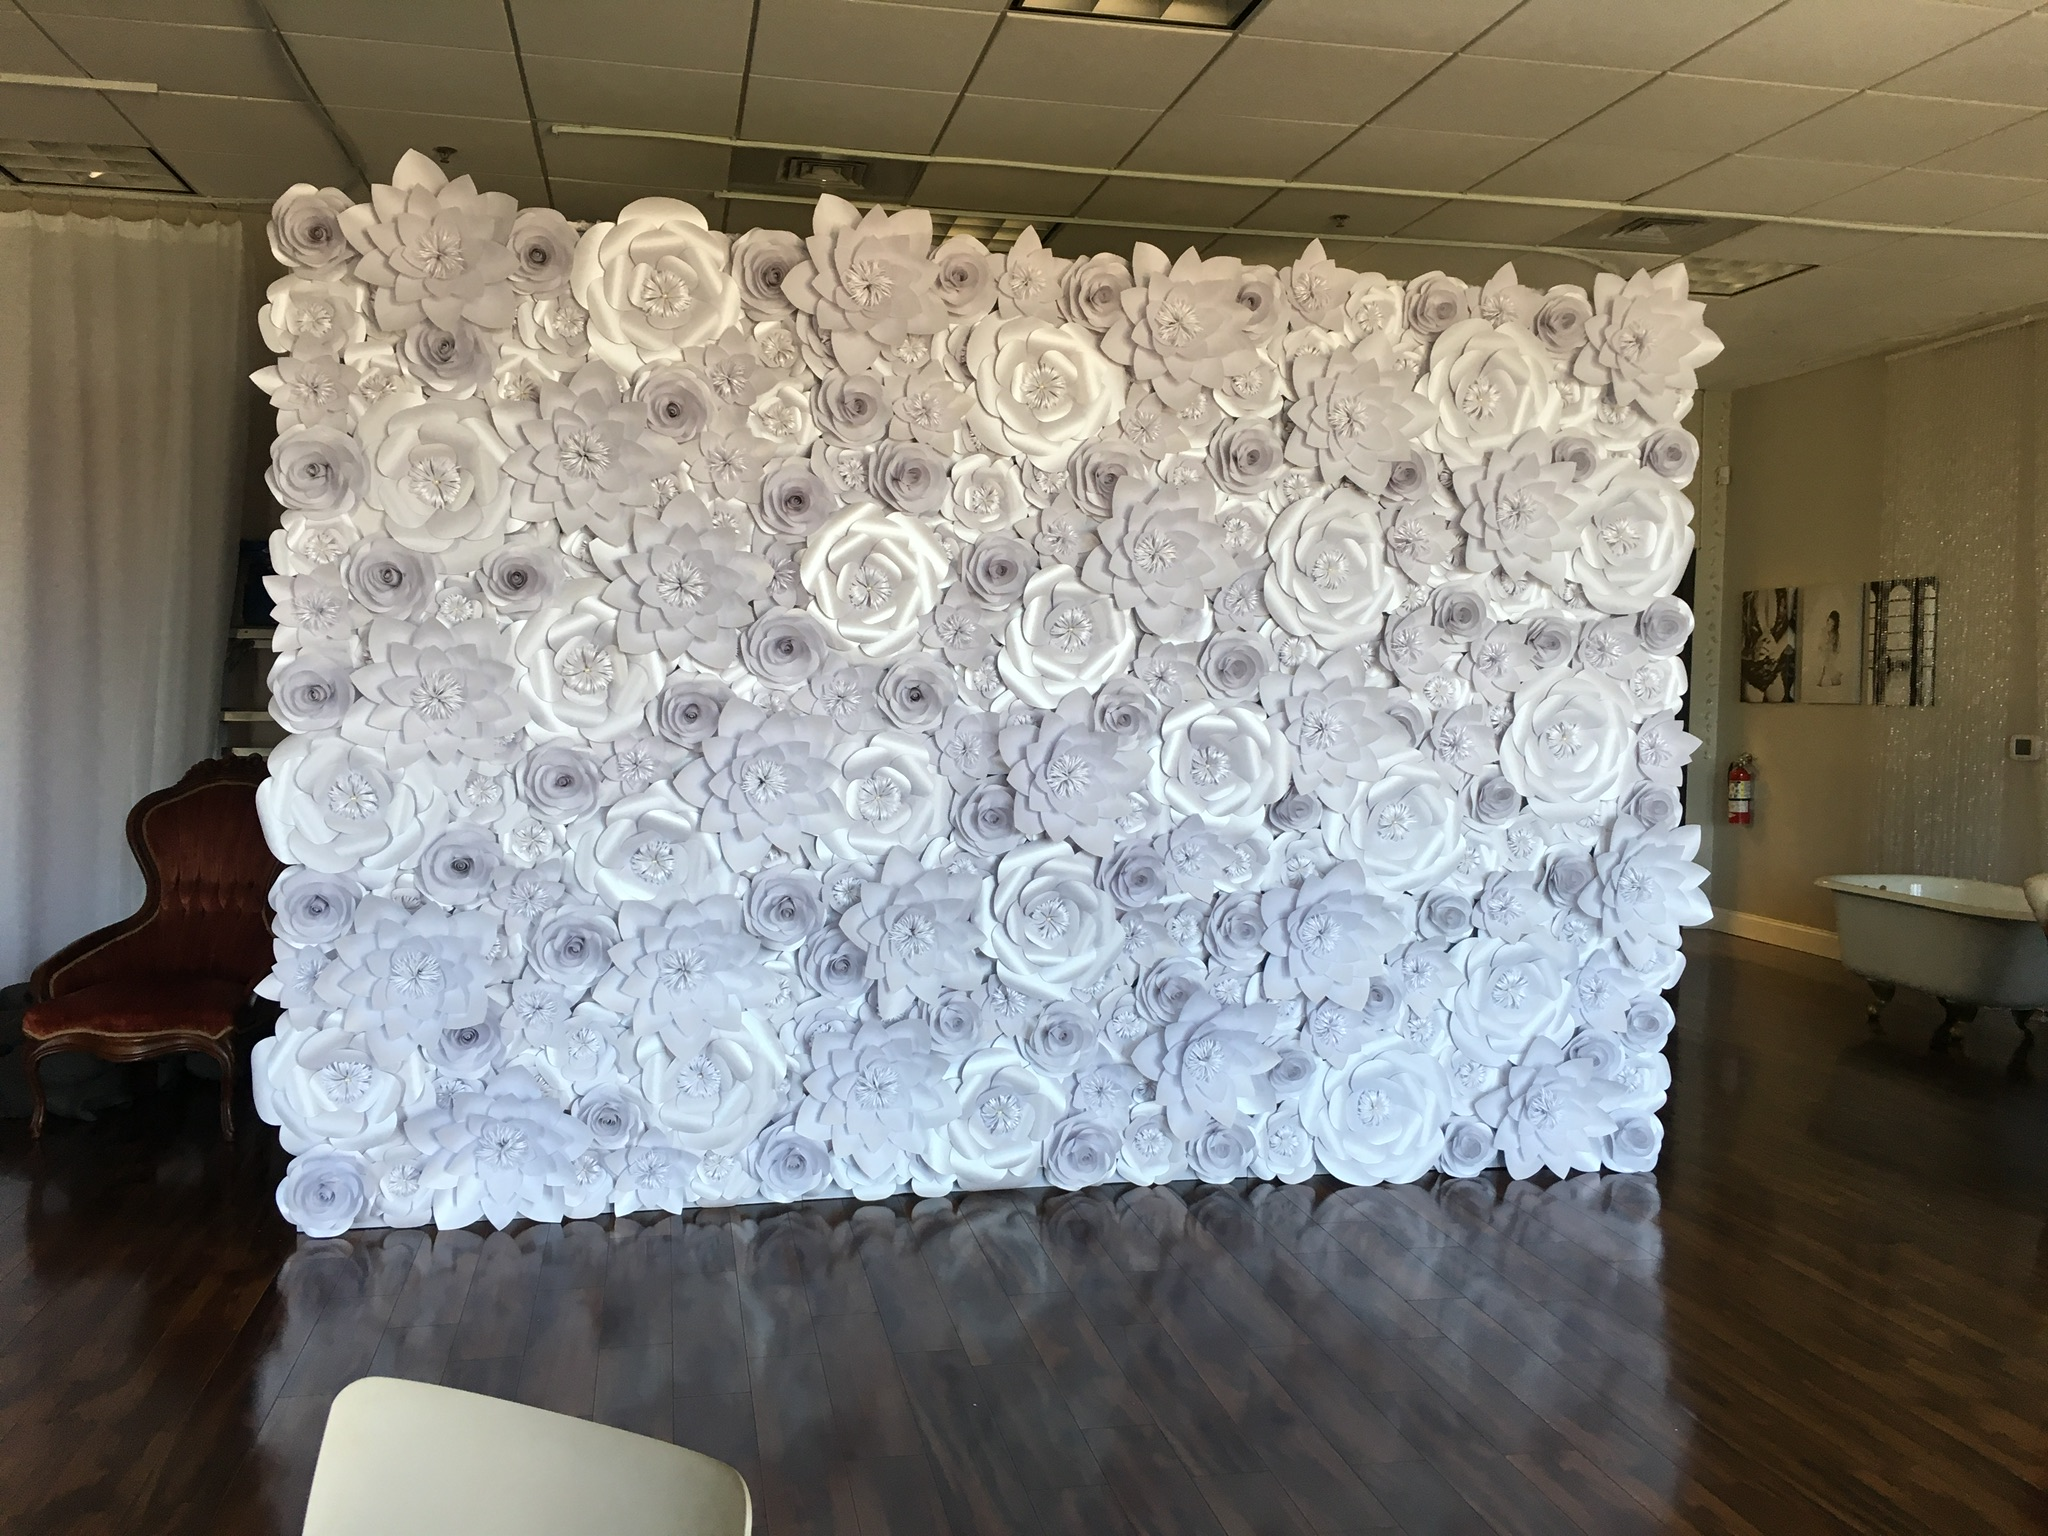 White Shimmer Wall 8x12'